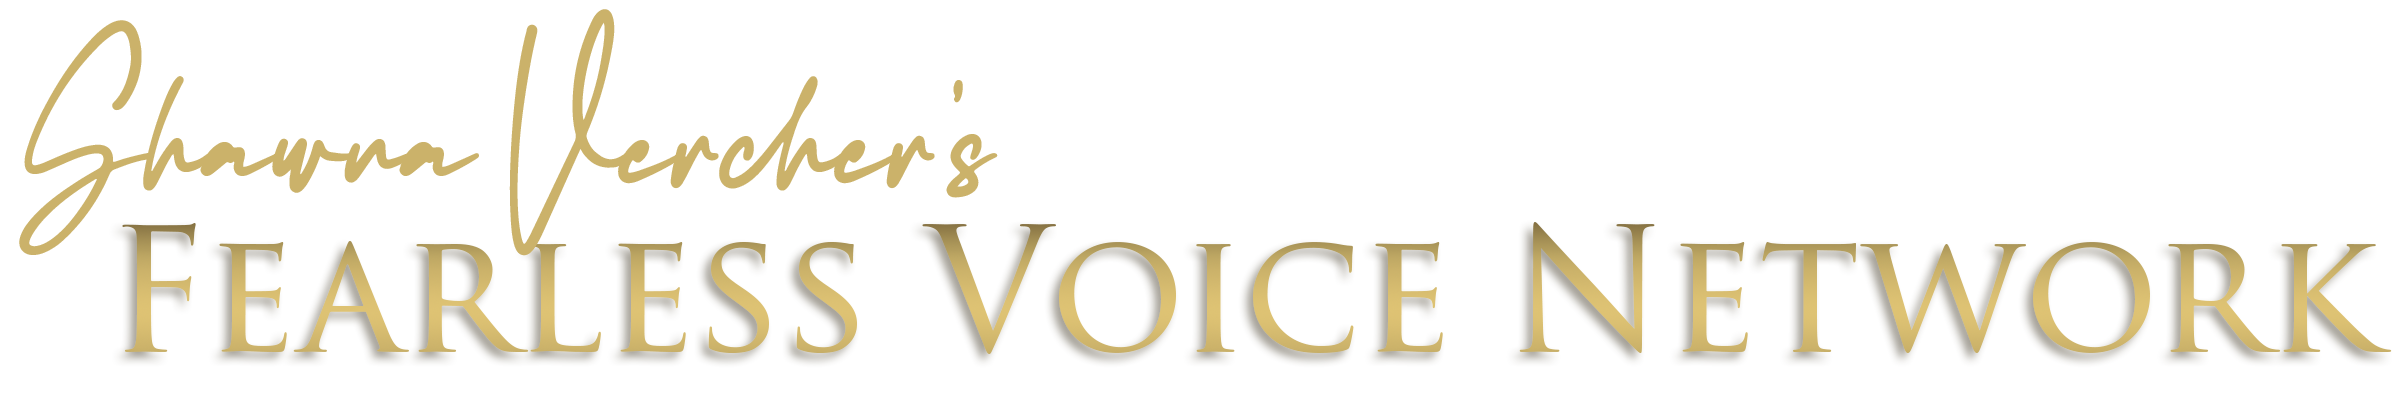 Shawna Vercher's Fearless Voice Network